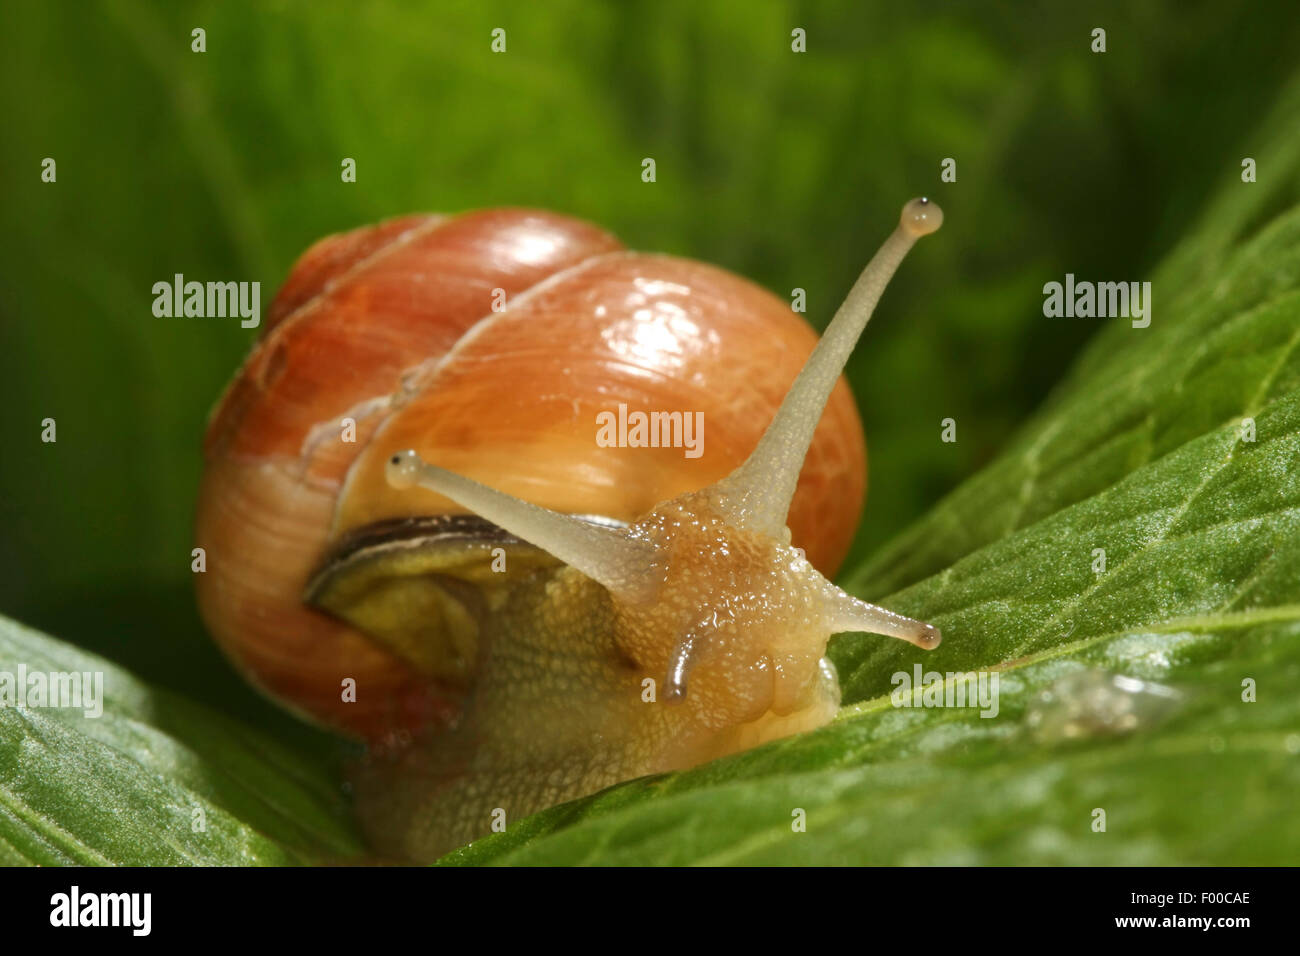 brown-lipped snail, grove snail, grovesnail, English garden snail, larger banded snail, banded wood snail (Cepaea - Stock Image